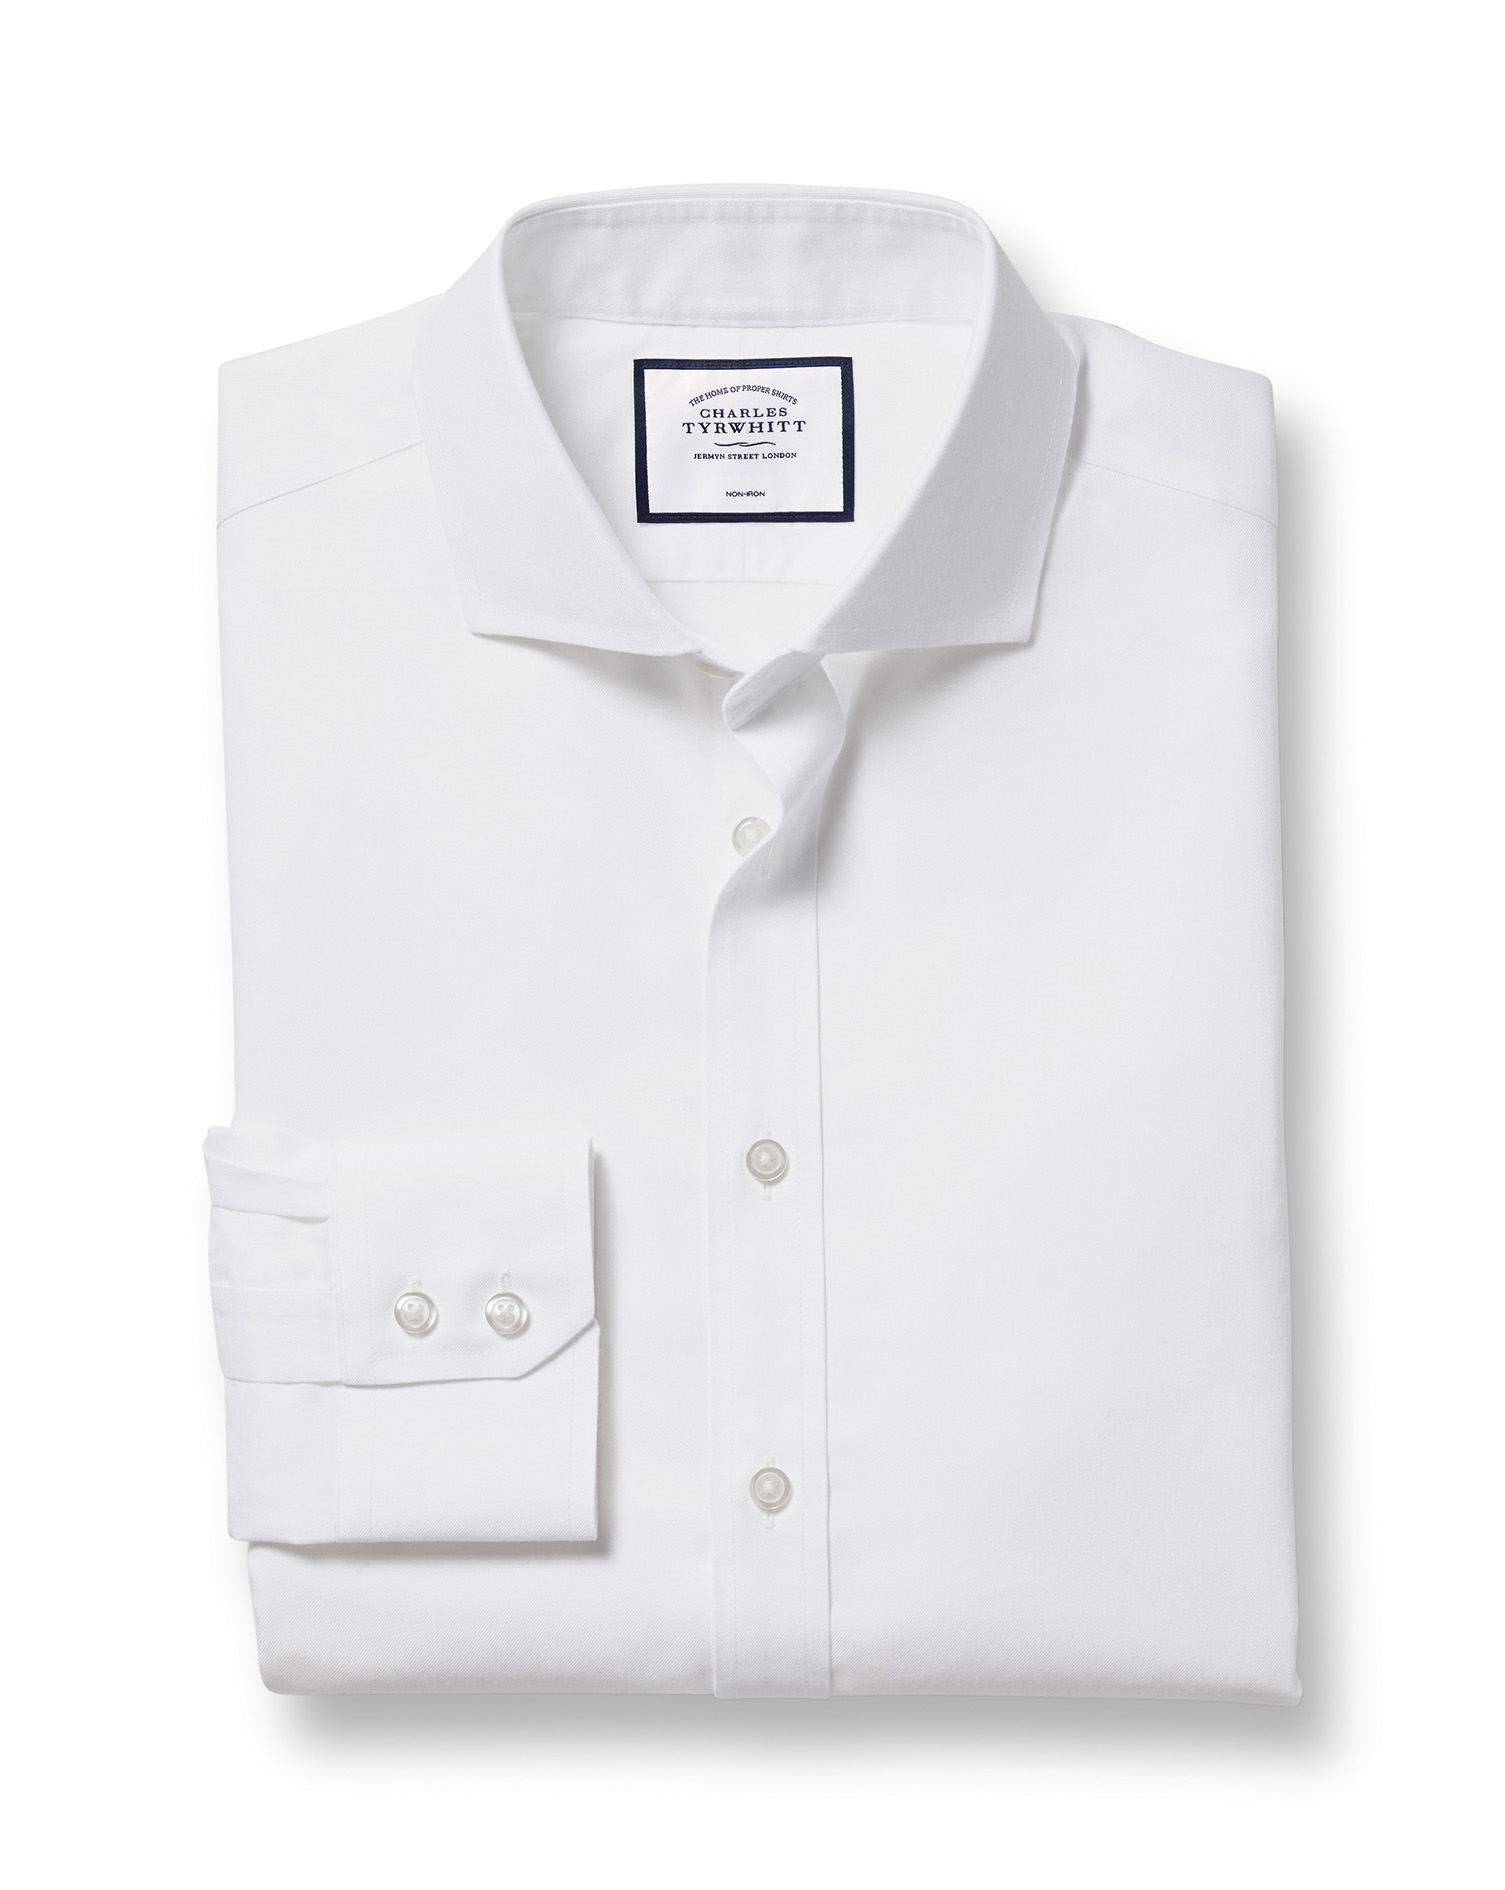 Slim Fit Extreme Cutaway Non-Iron Twill White Cotton Formal Shirt Single Cuff Size 17.5/36 by Charle